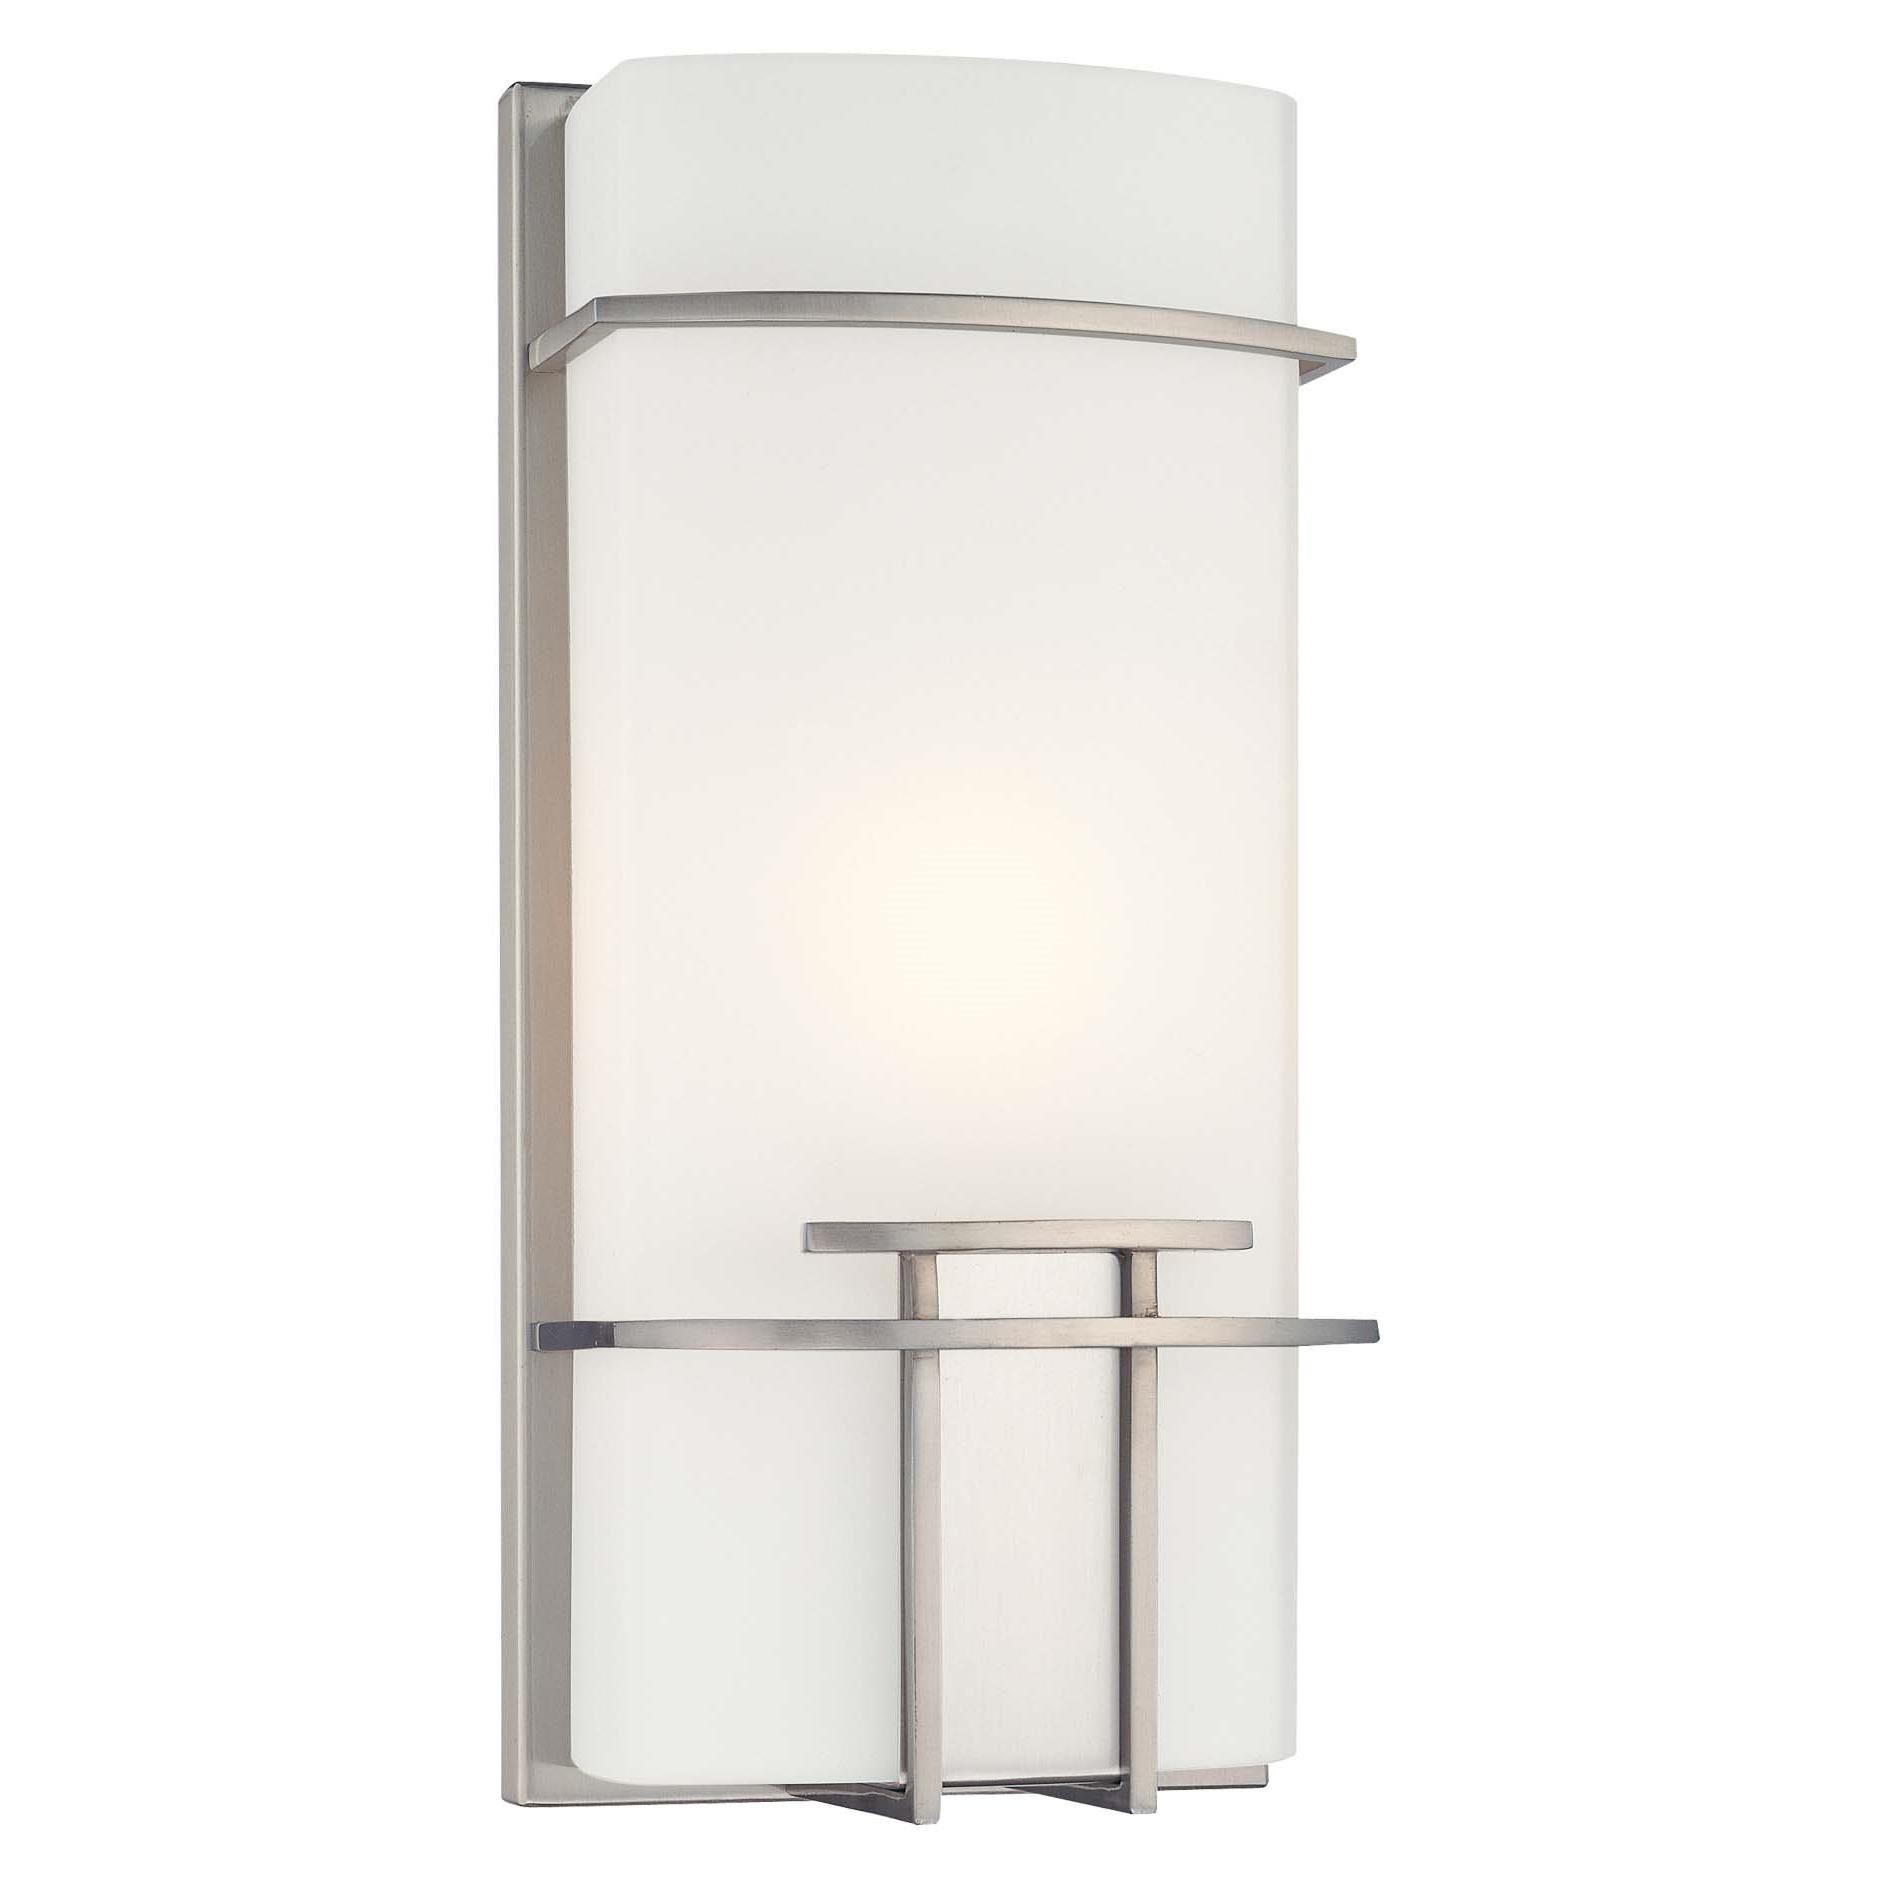 Kovacs 12 Inch Wall Sconce - P465-084 - Modern Contemporary